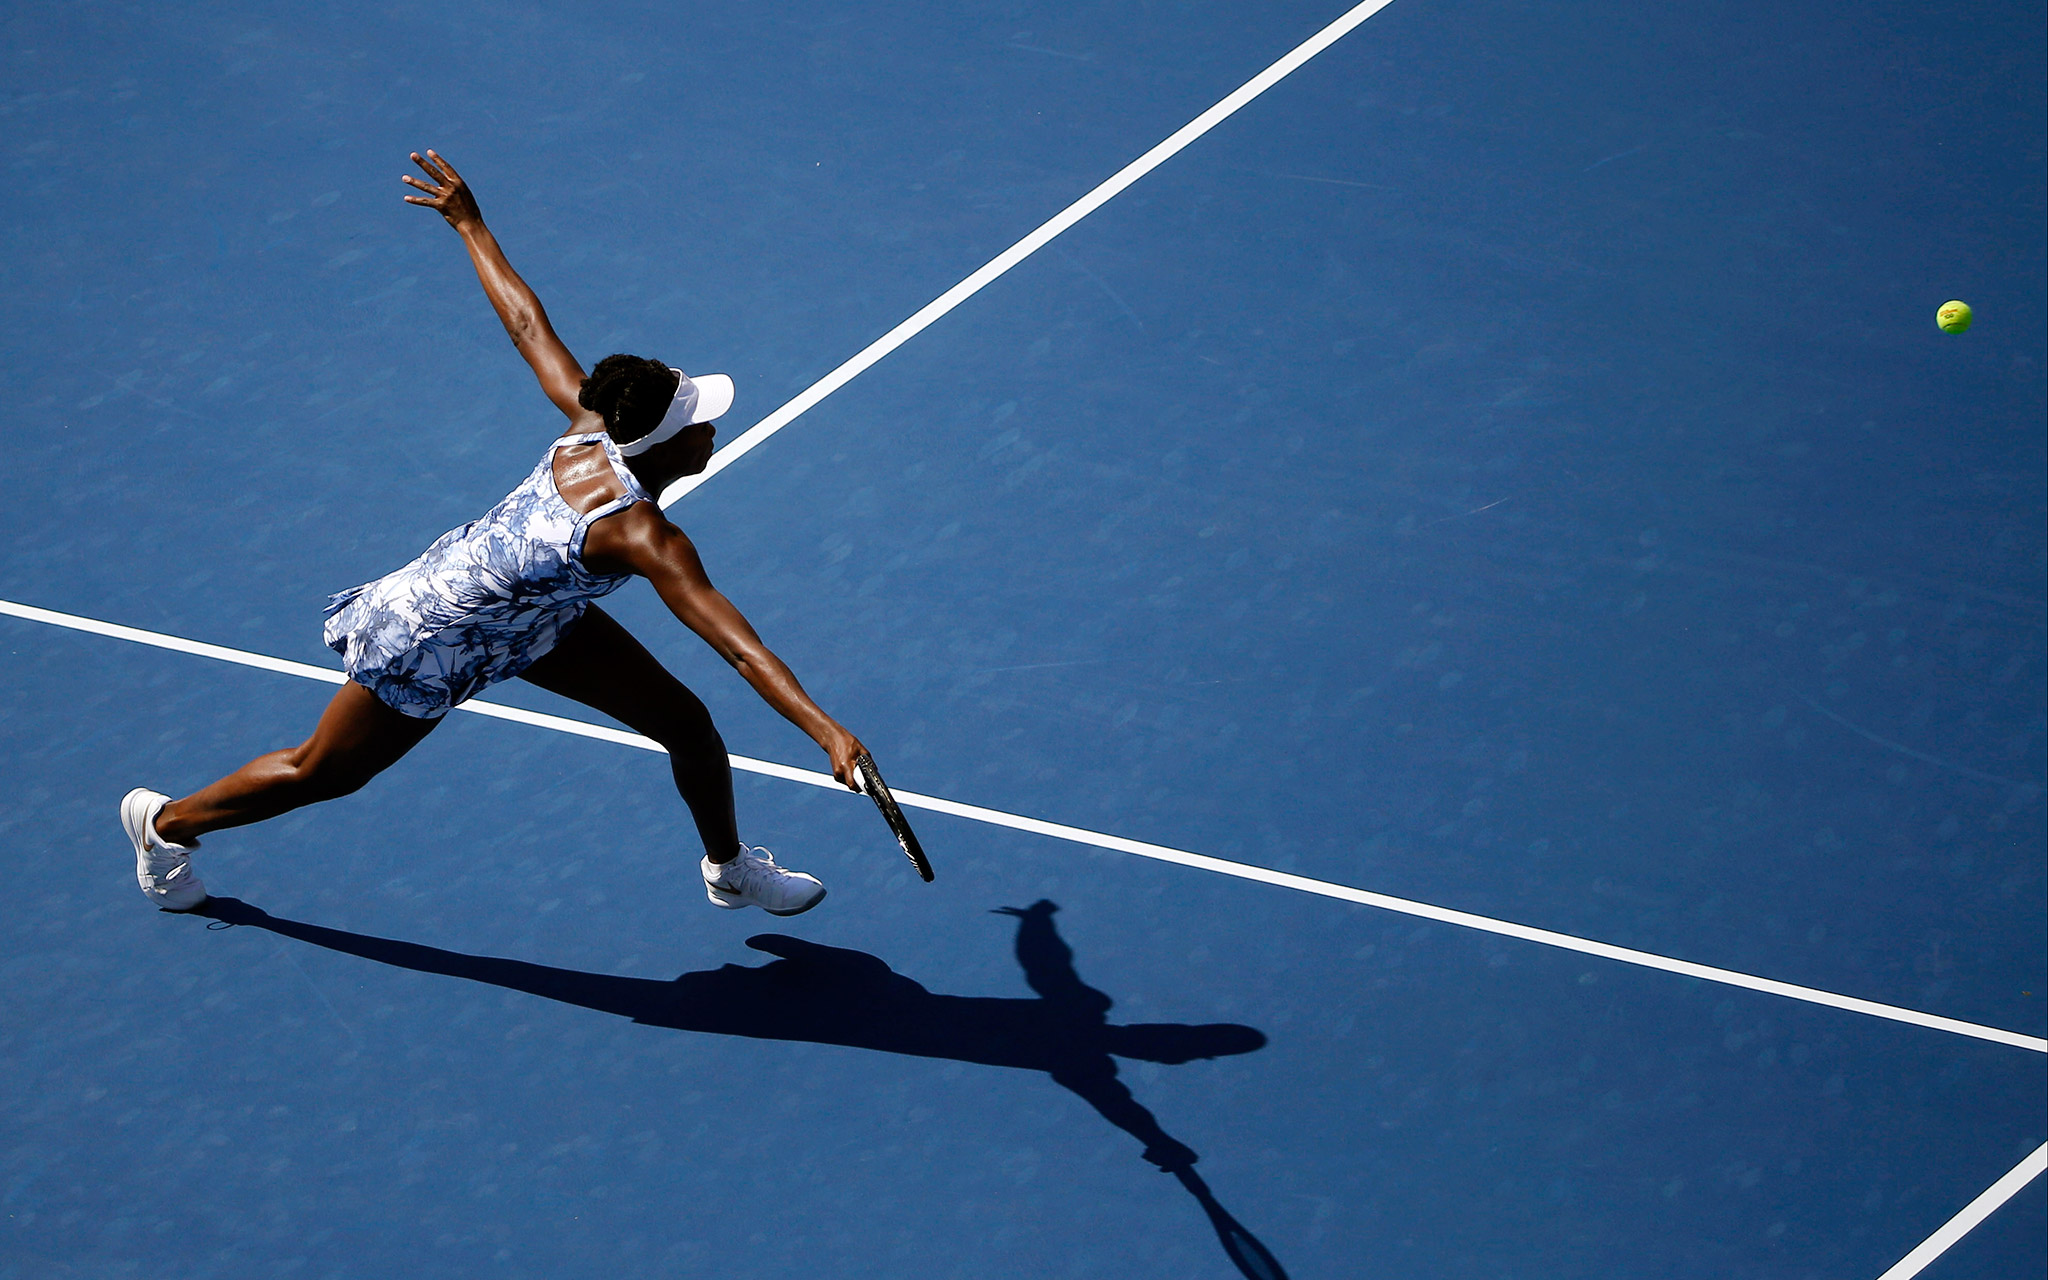 Venus Williams was stretched in her first-round match Monday but held on to beat Kimiko Date-Krumm 2-6, 6-3, 6-3.